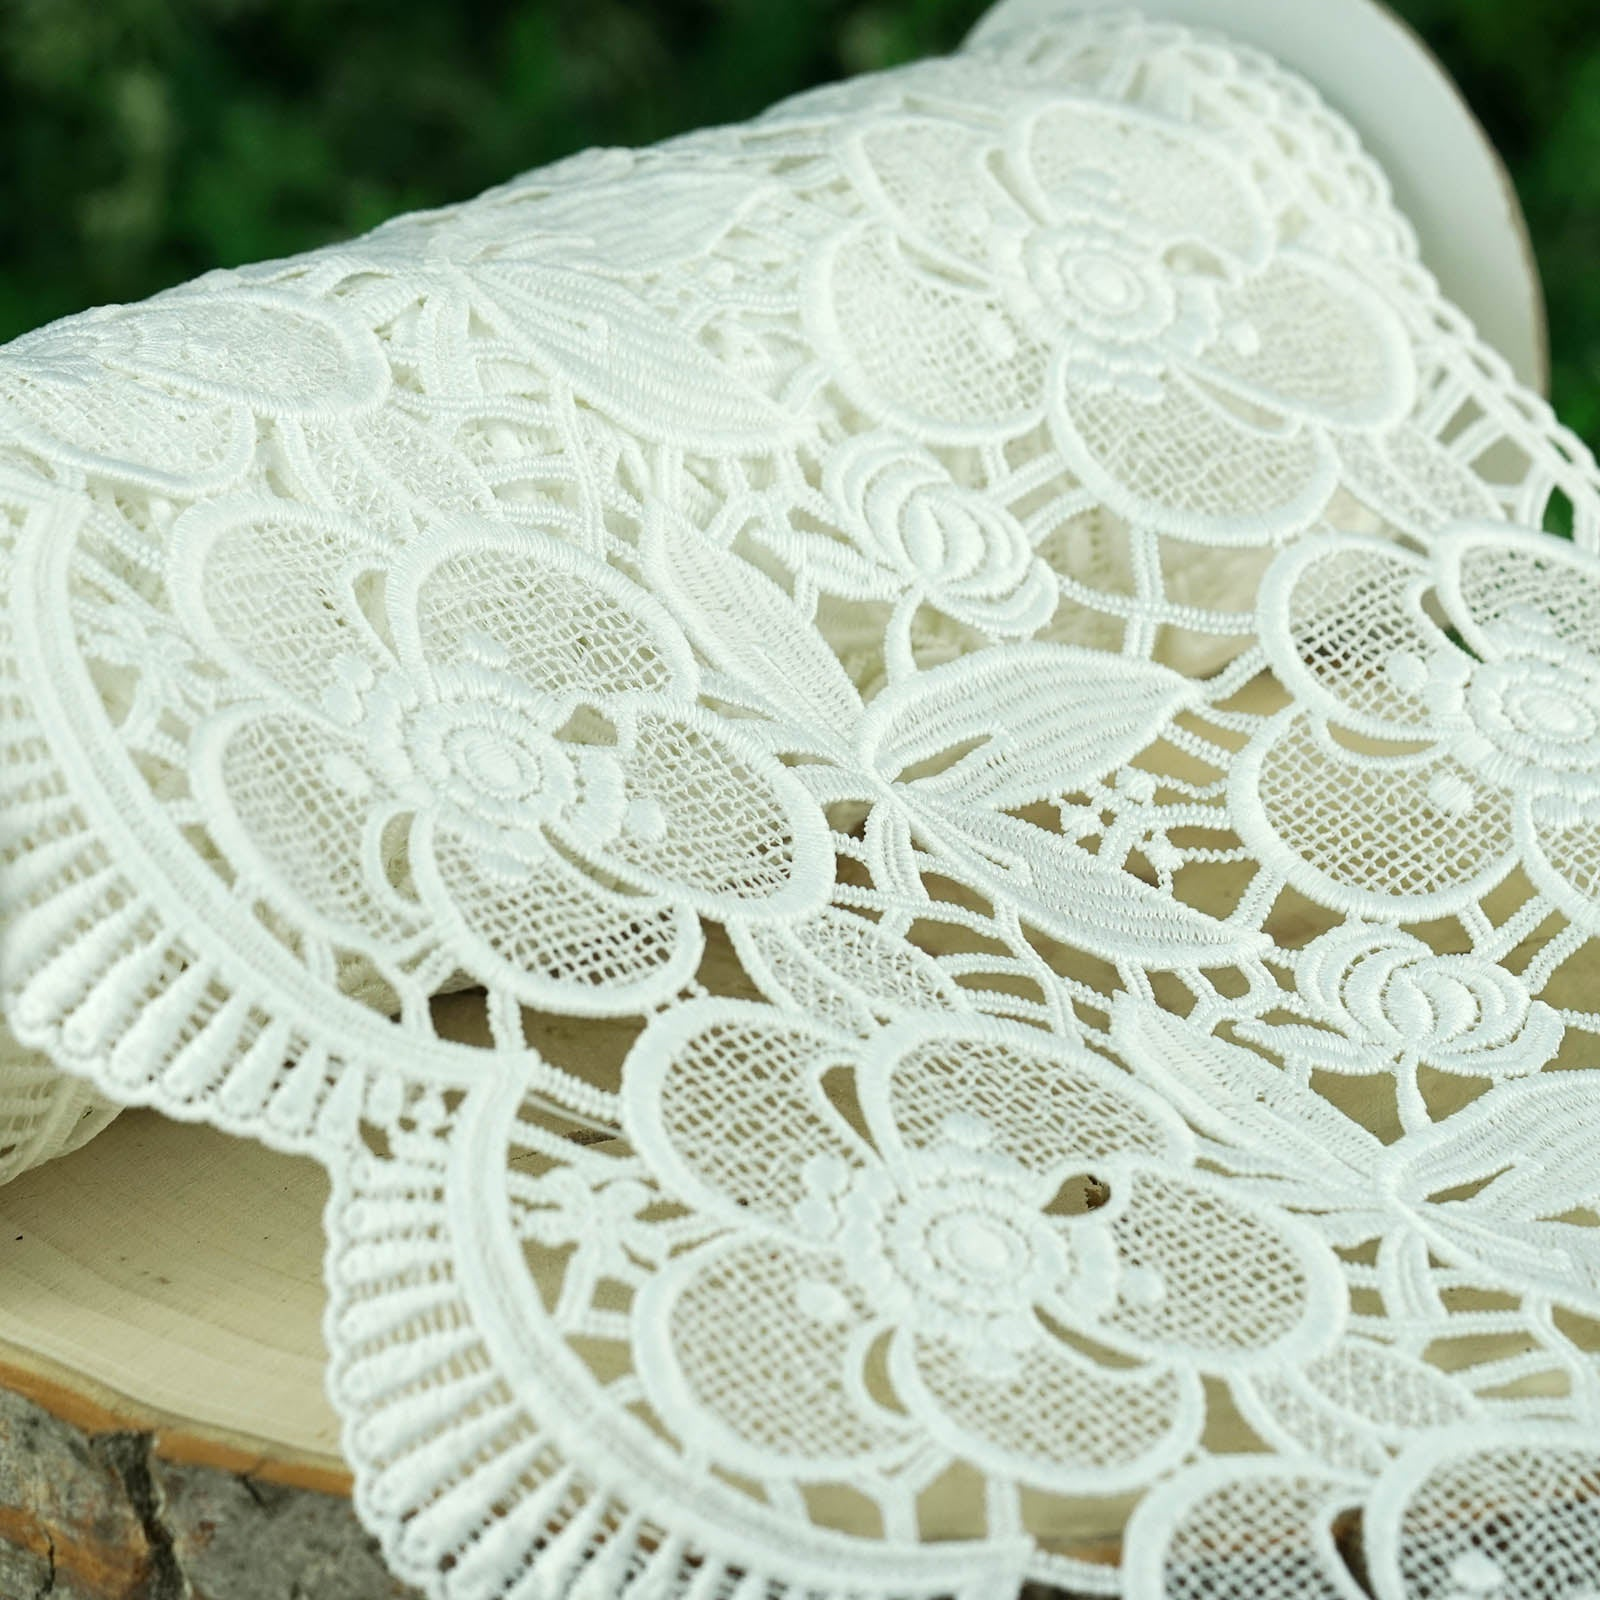 Crochet Lace Ribbon 10 X 5 Yards White Pineapple Doily